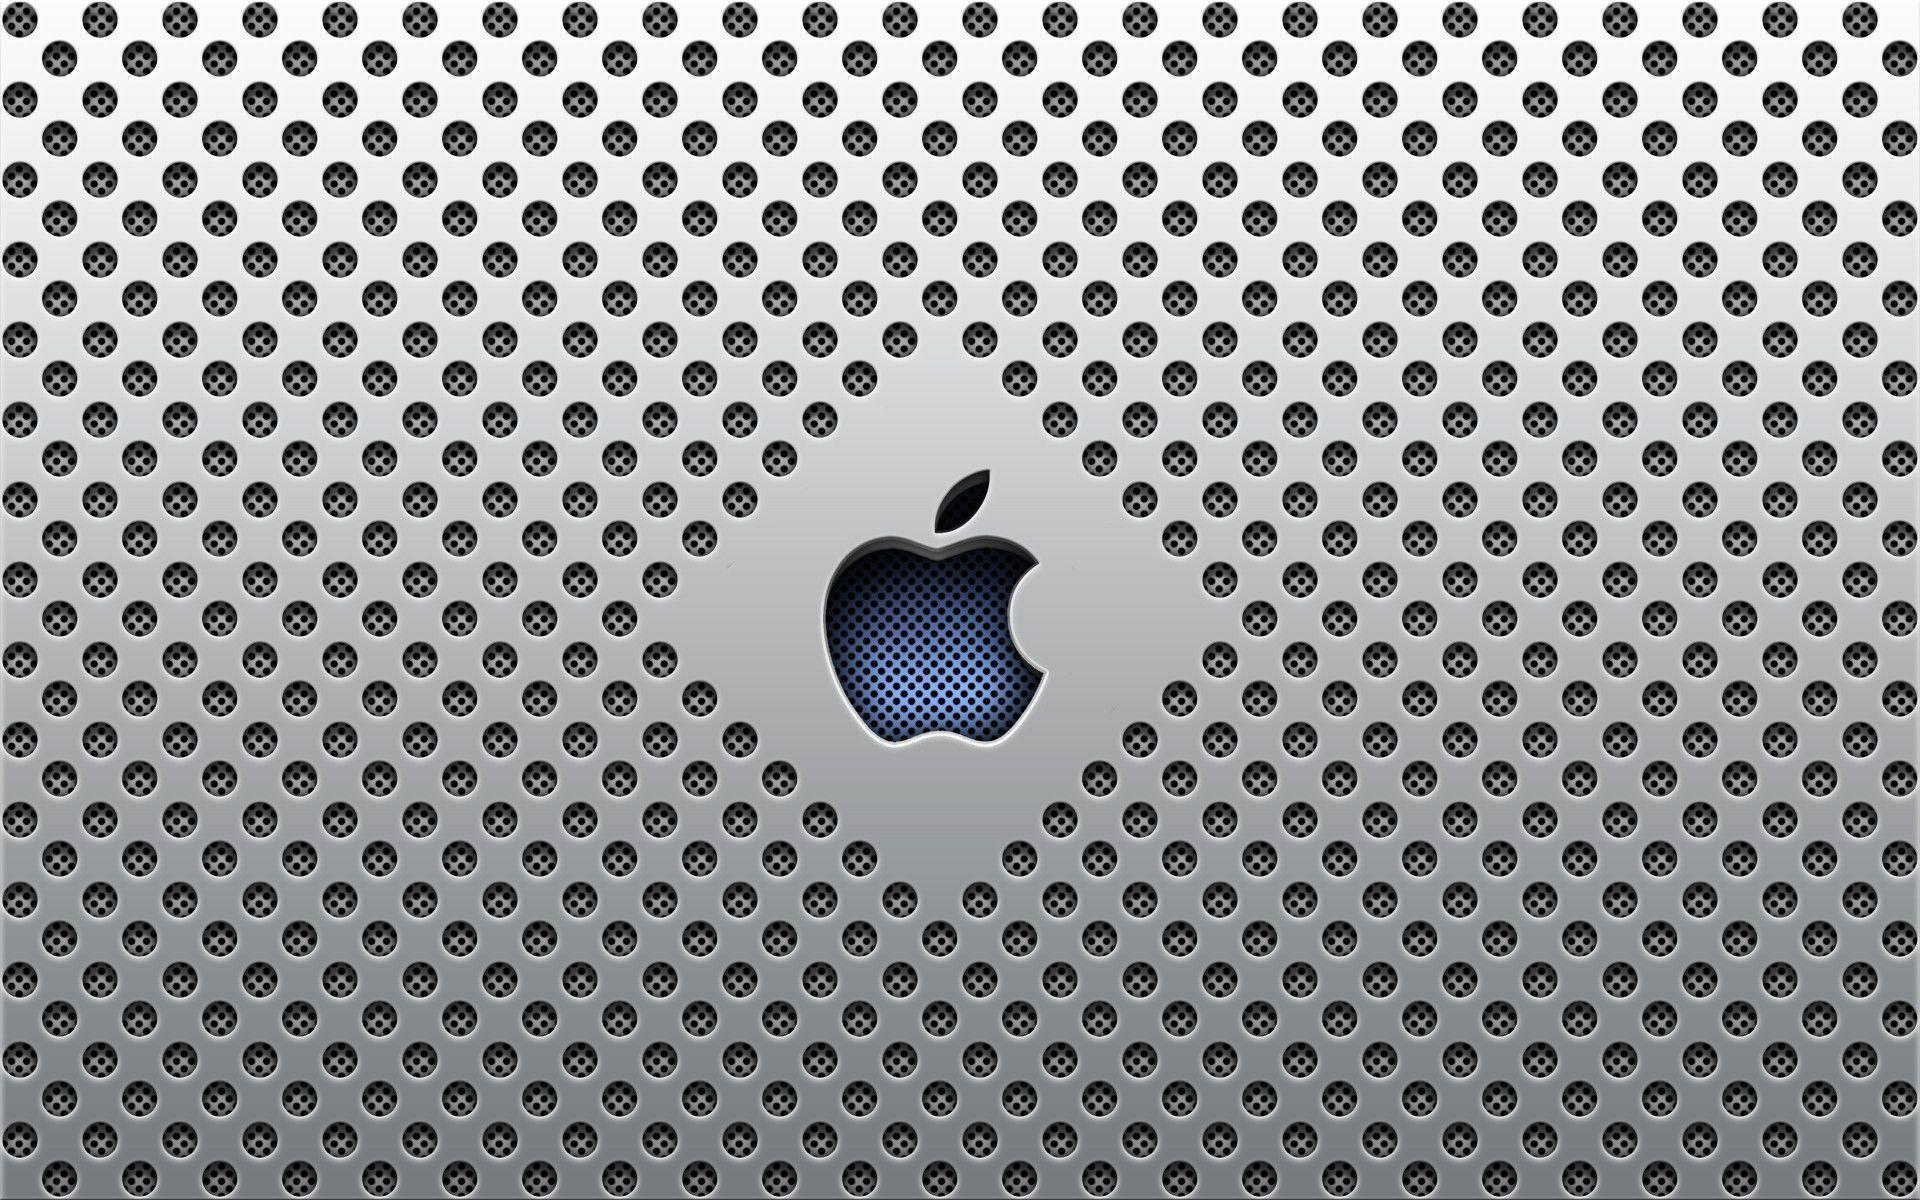 free apple wallpapers Wallpapers HD Image 11035